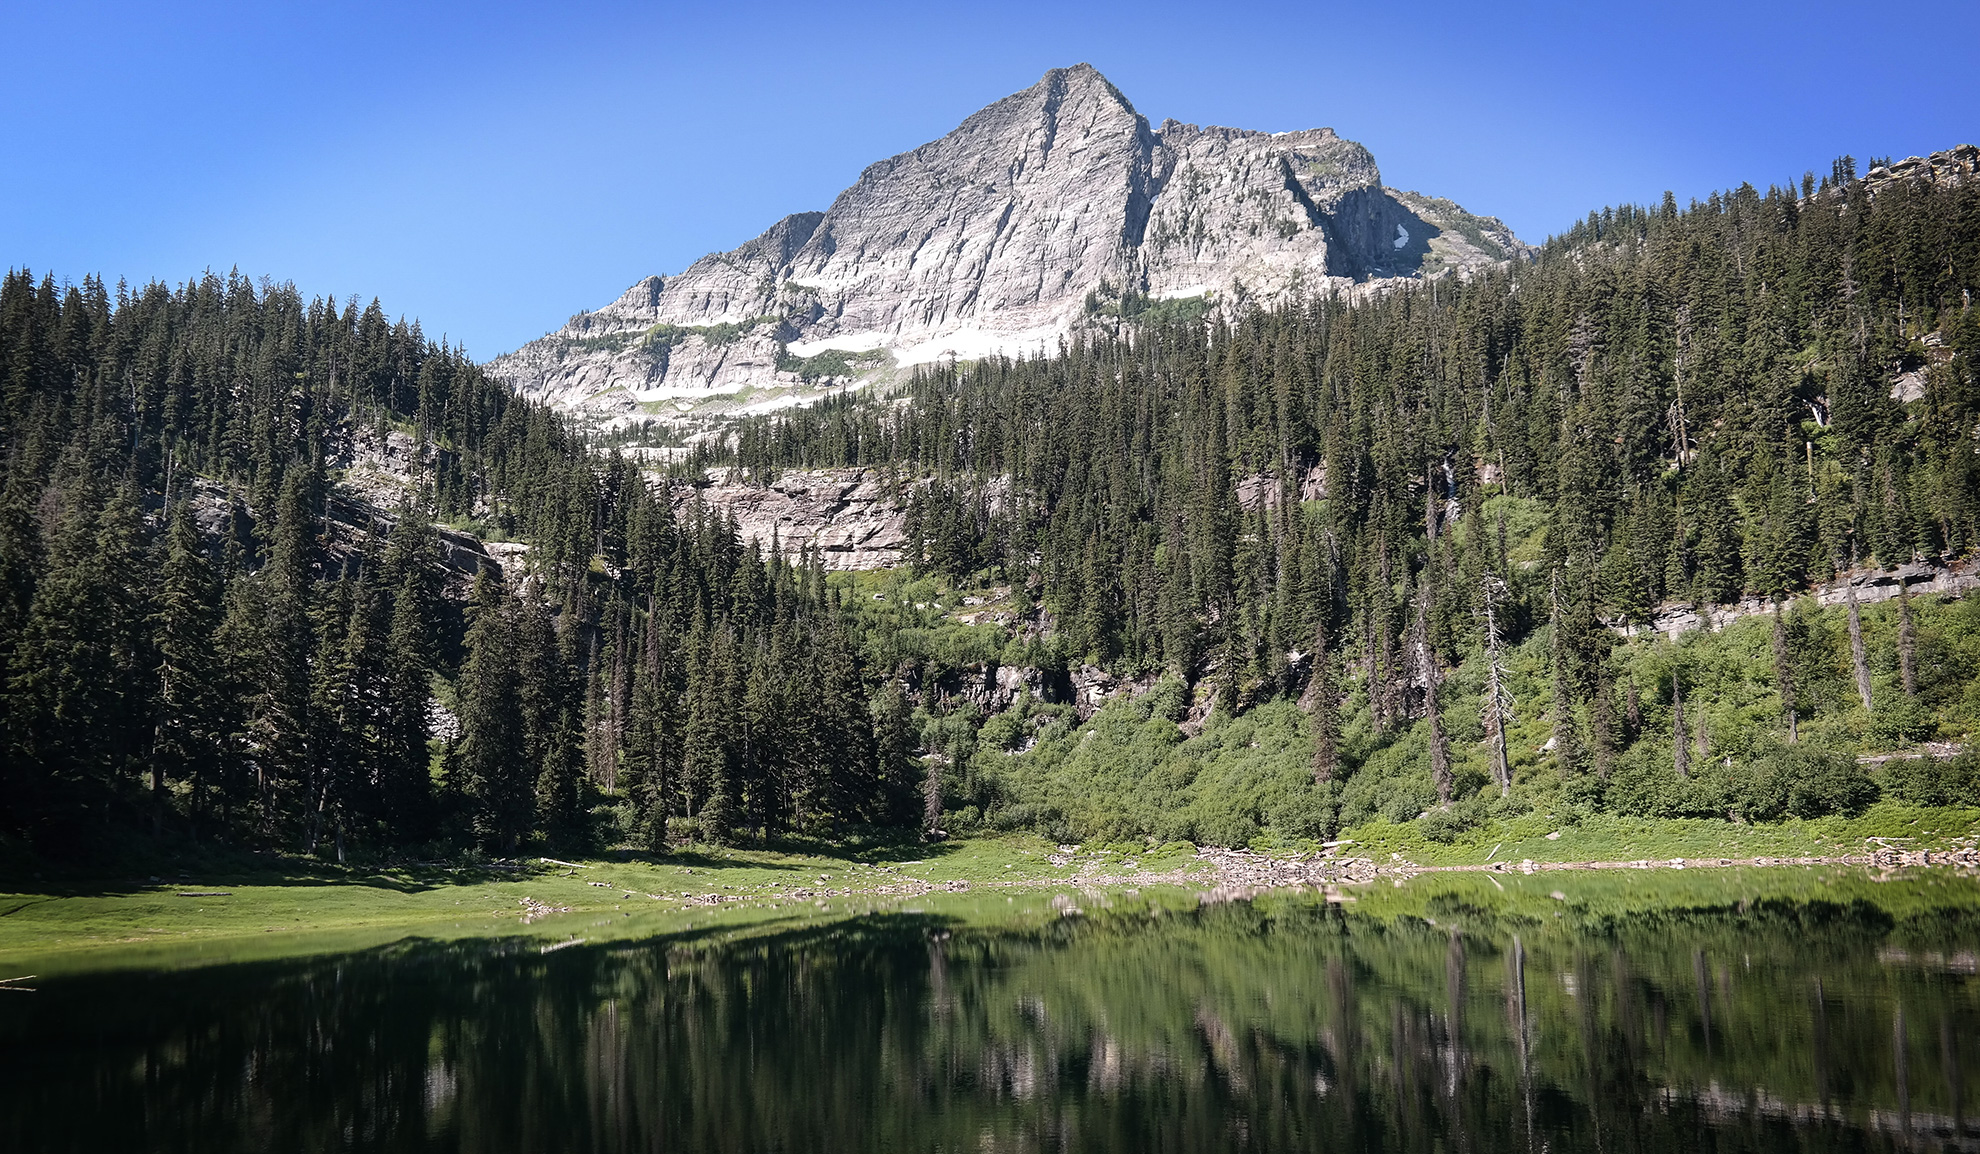 Saint Paul Lake in the Cabinet Mountains Wilderness, in July 2016.